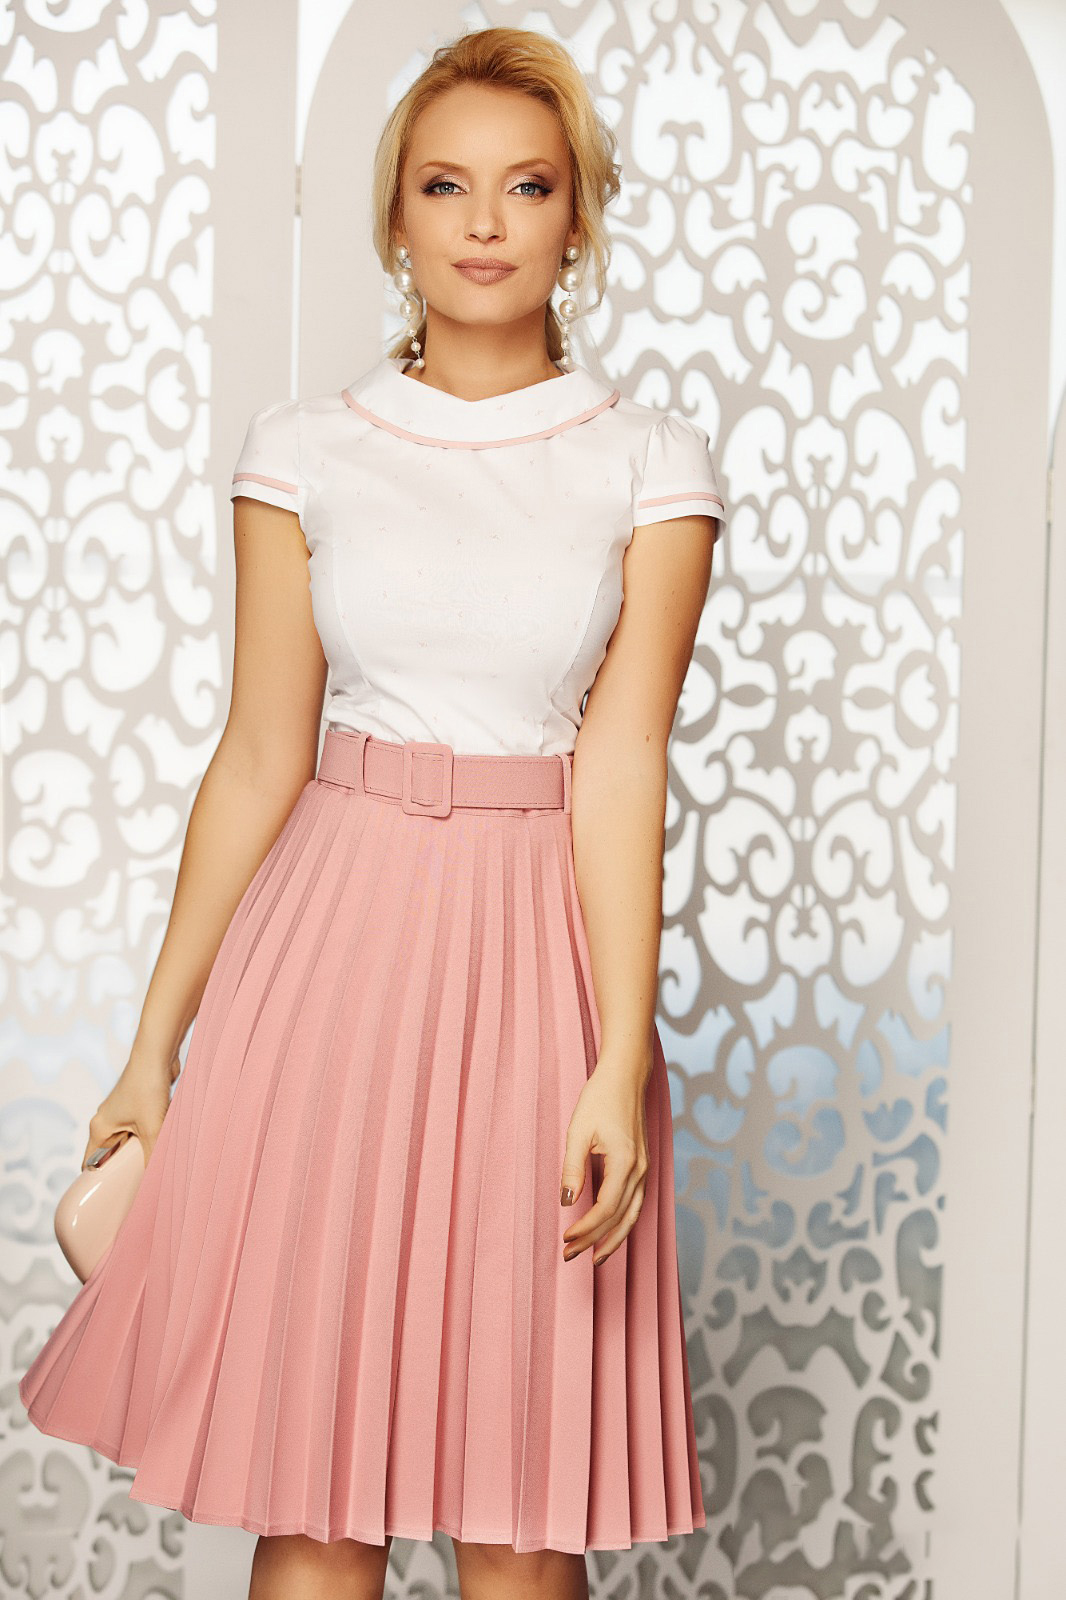 Fofy rosa elegant folded up cloche skirt high waisted accessorized with belt slightly elastic fabric